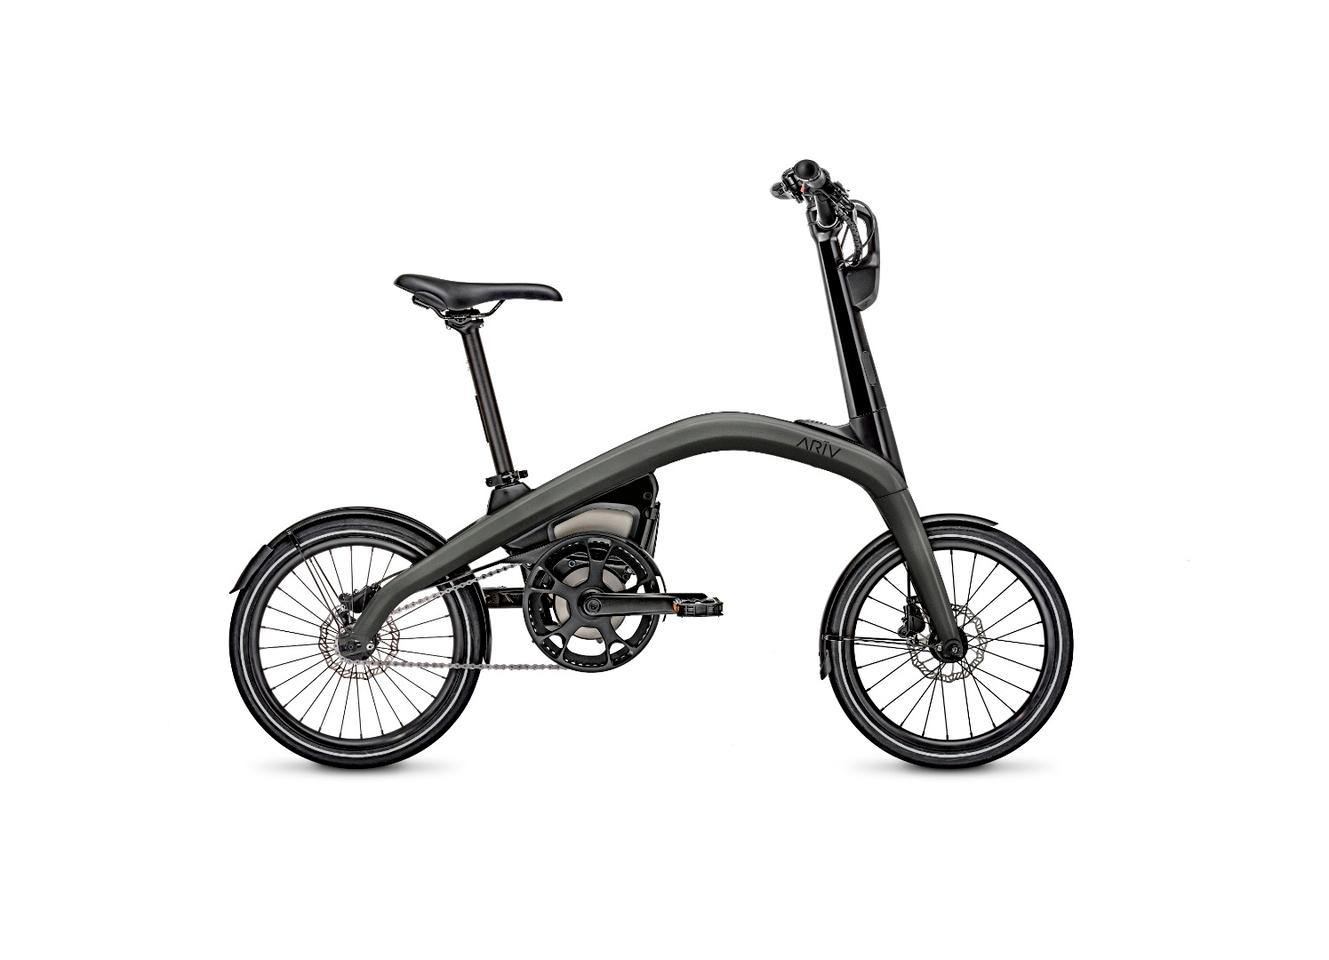 After teasing its first line of e-bikes in November last year, General Motors has today gone the full reveal